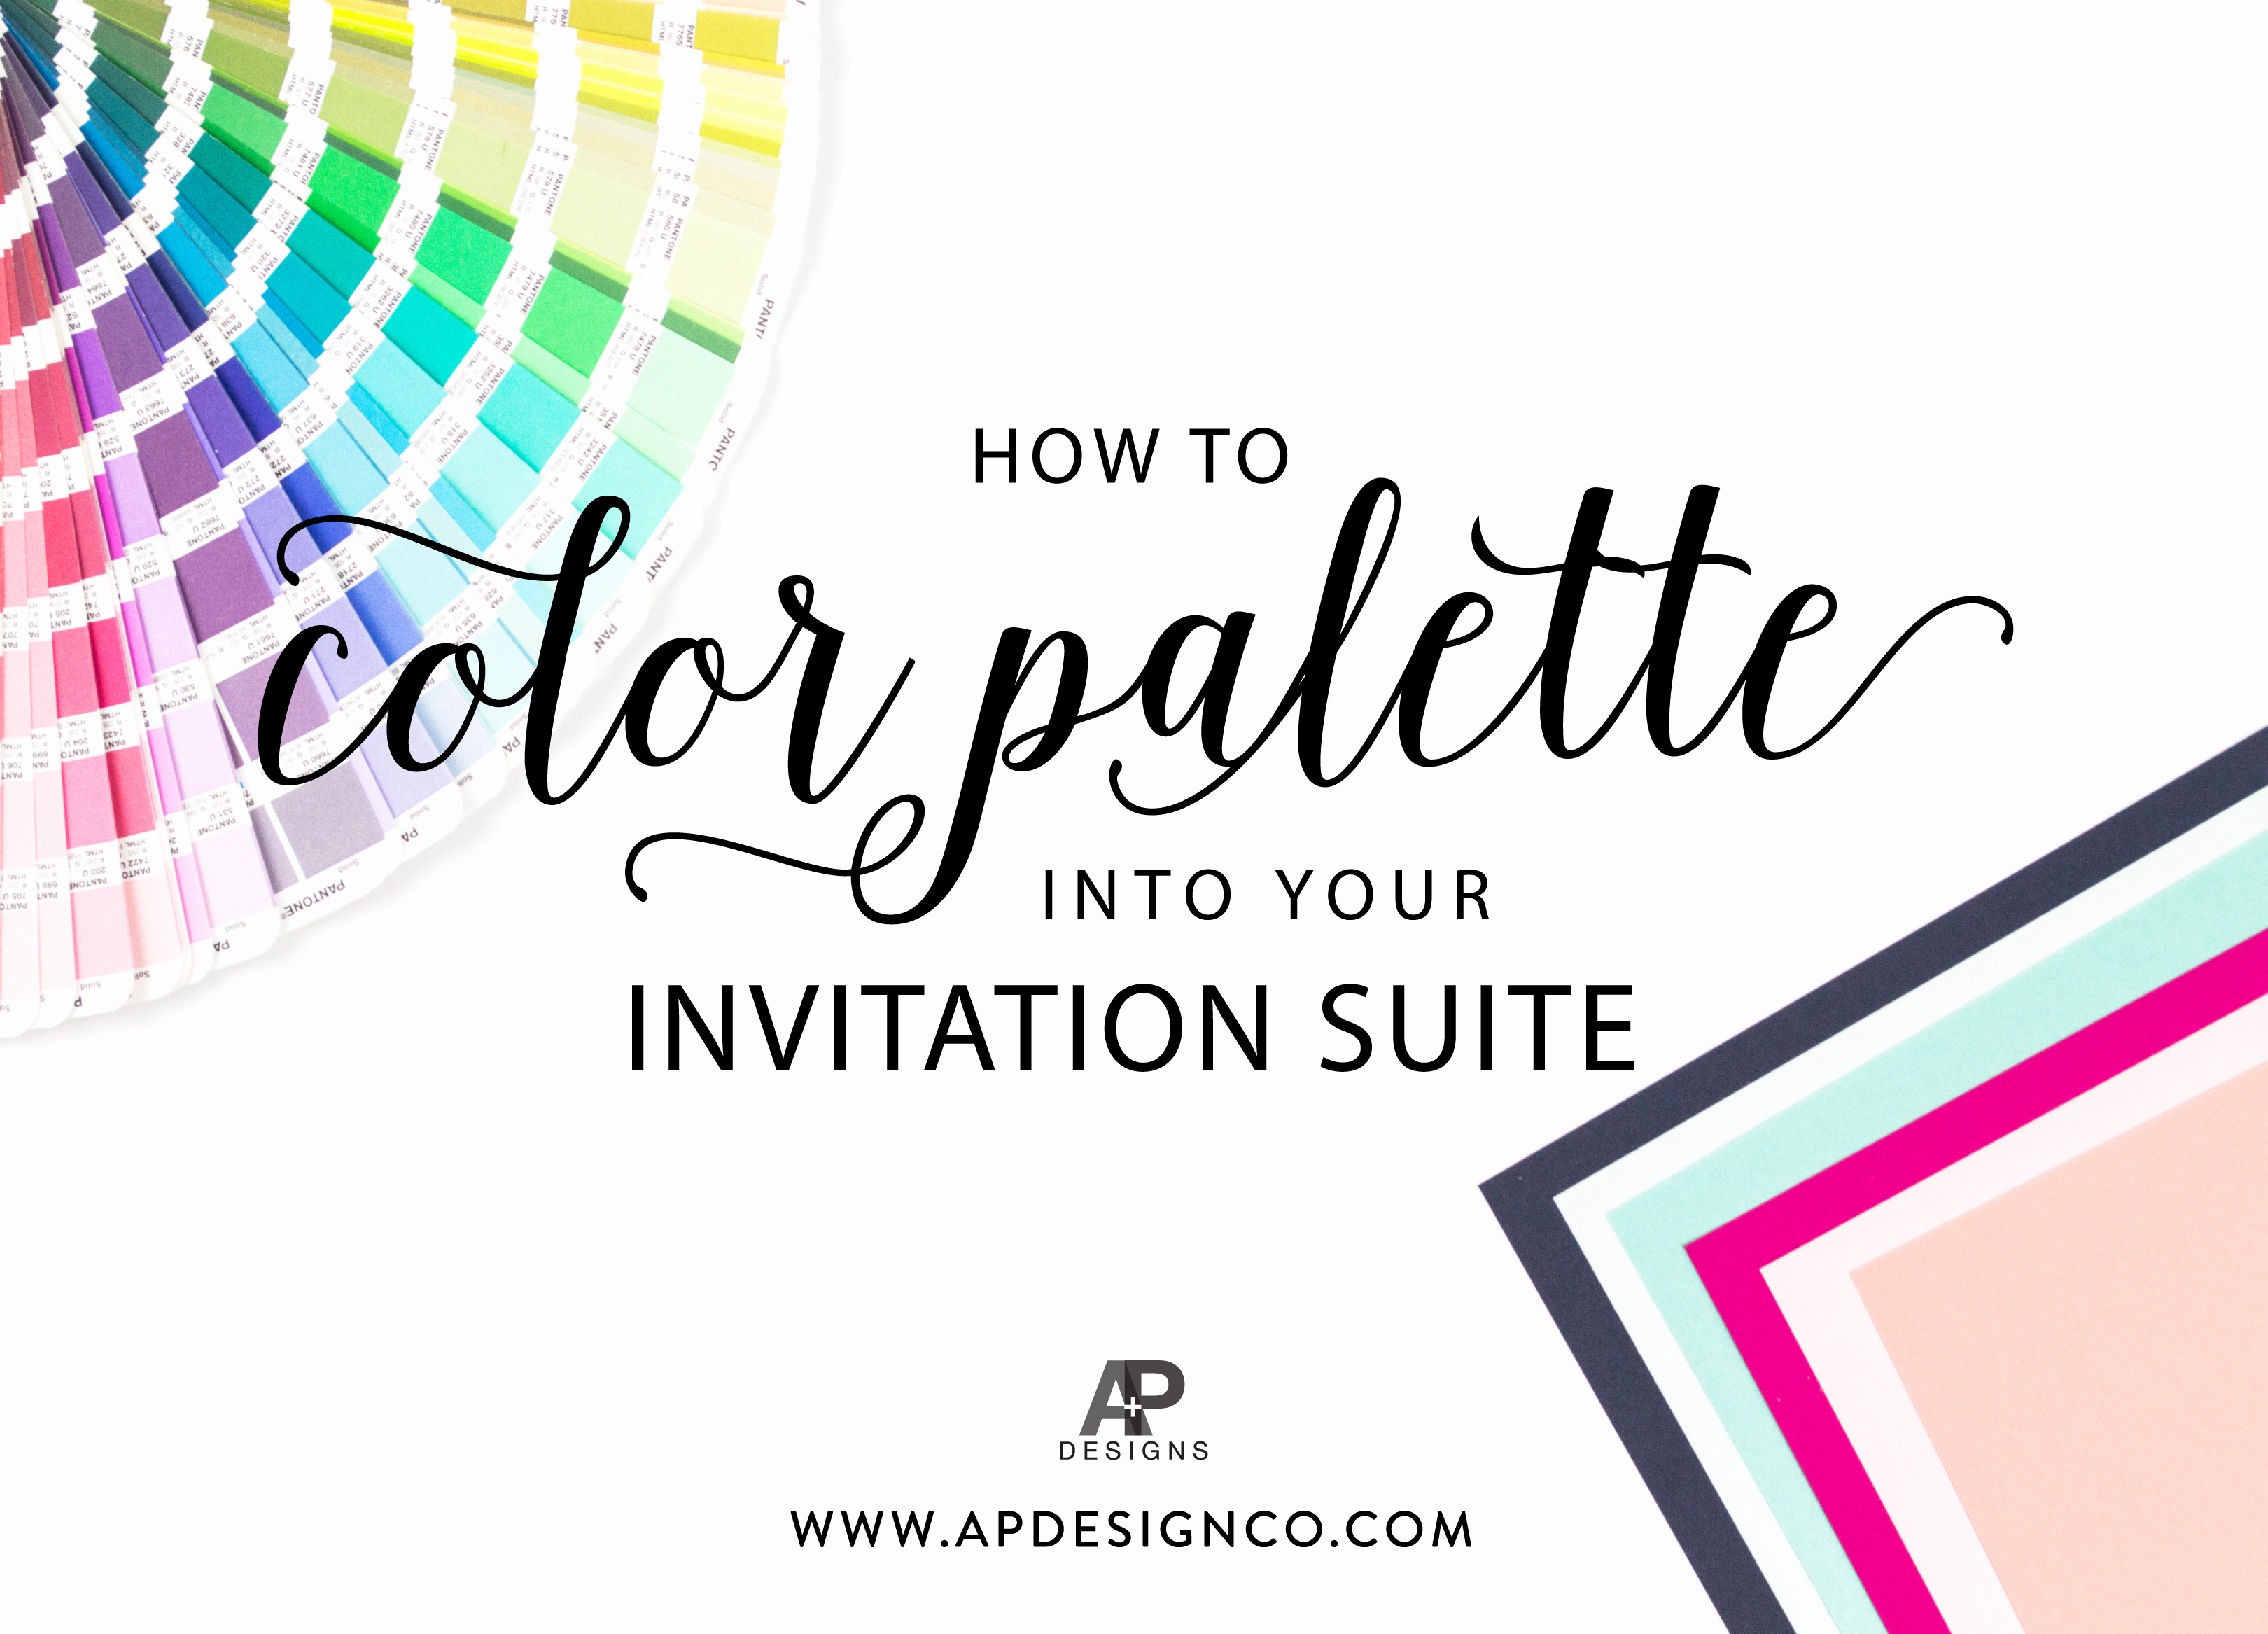 Paint Palette Invitation Template Luxury Incorporating Your Color Palette Into Your Wedding Invitations